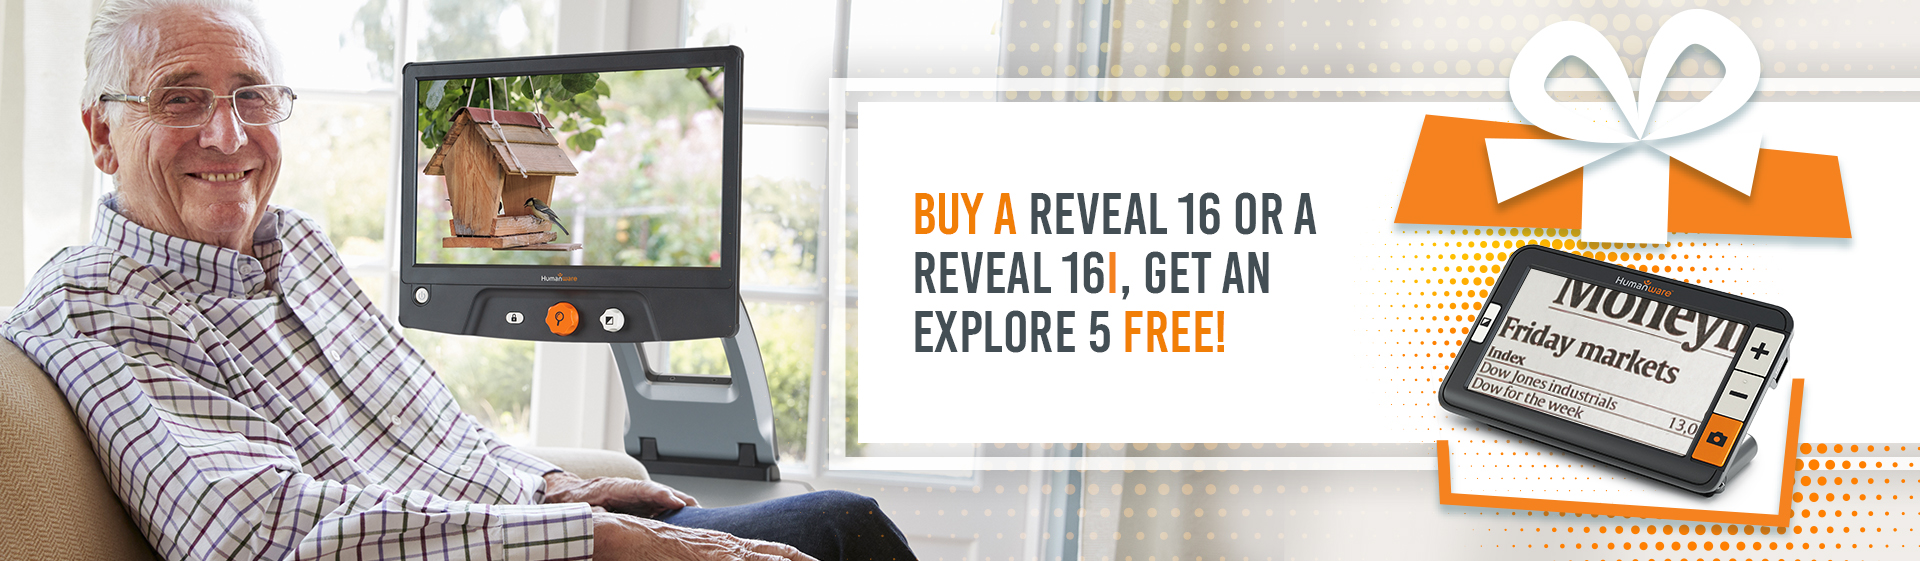 Buy a Reveal 16 or a Reveal 16i, get an Explore 5 free! This offer is not available through the instalments plans provided by DivideBuy, please contact our sales office for more details.